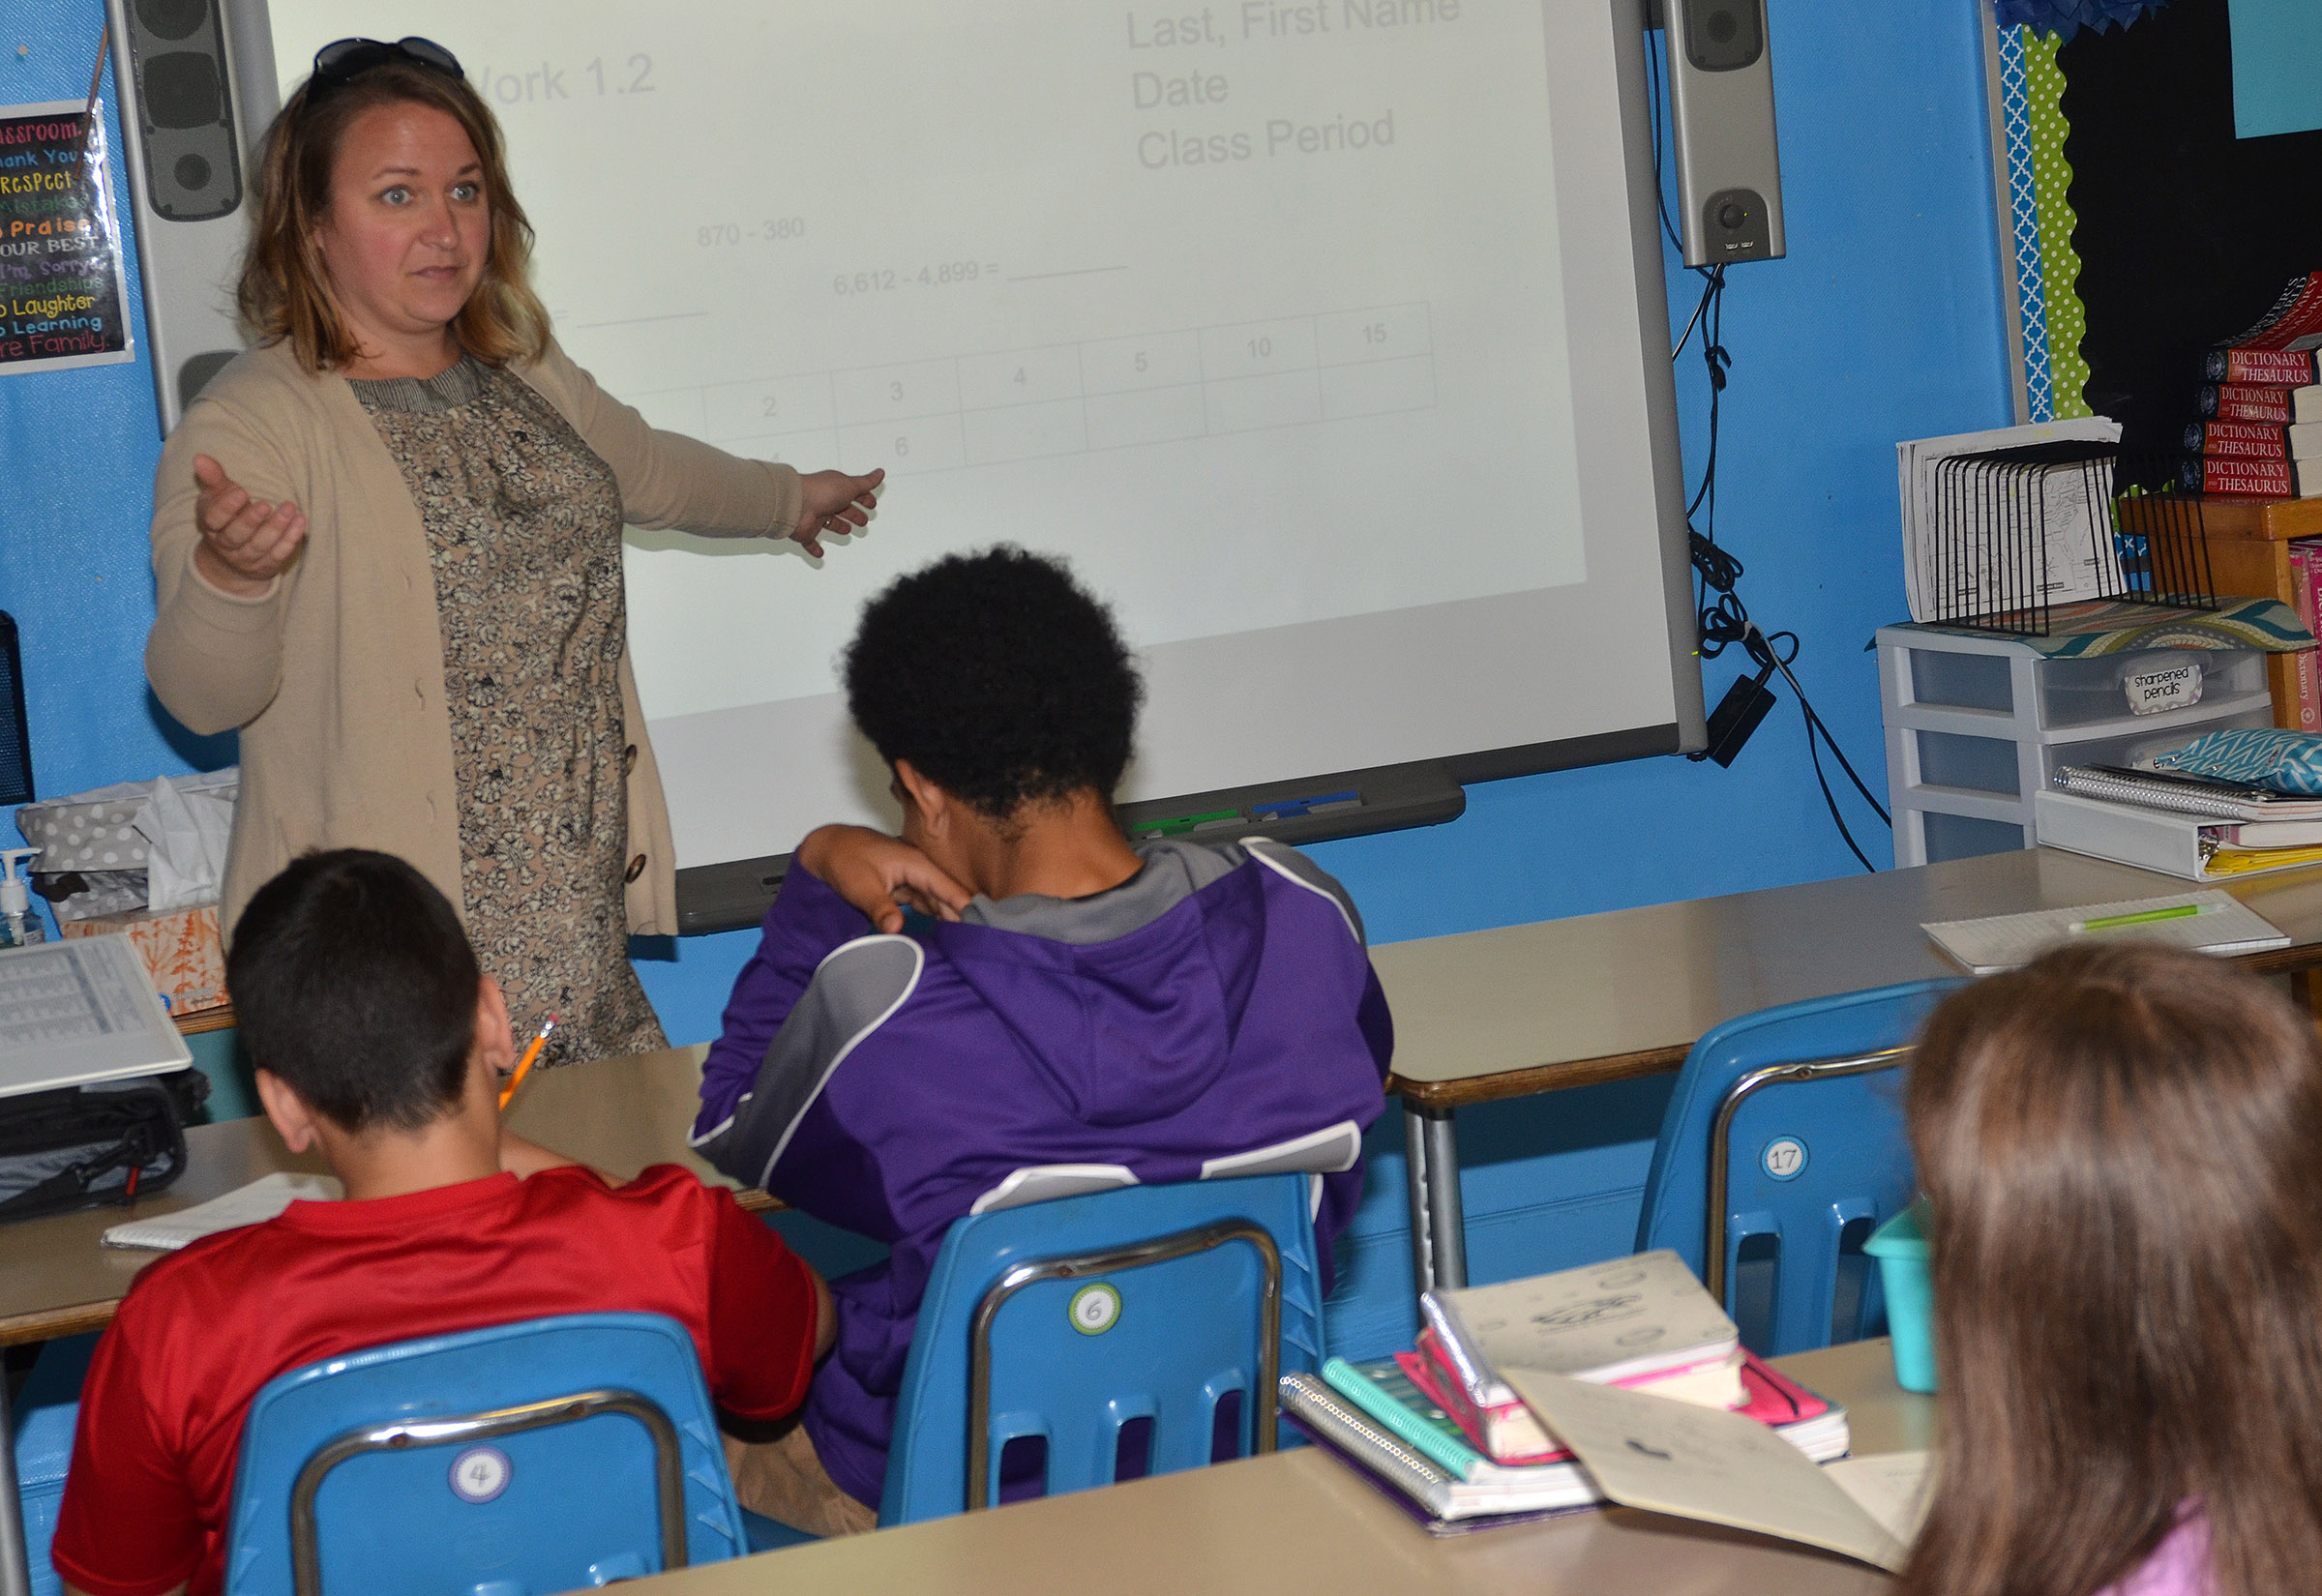 CMS teacher Katie Campbell talks to her students about finding the mean of a set of numbers.